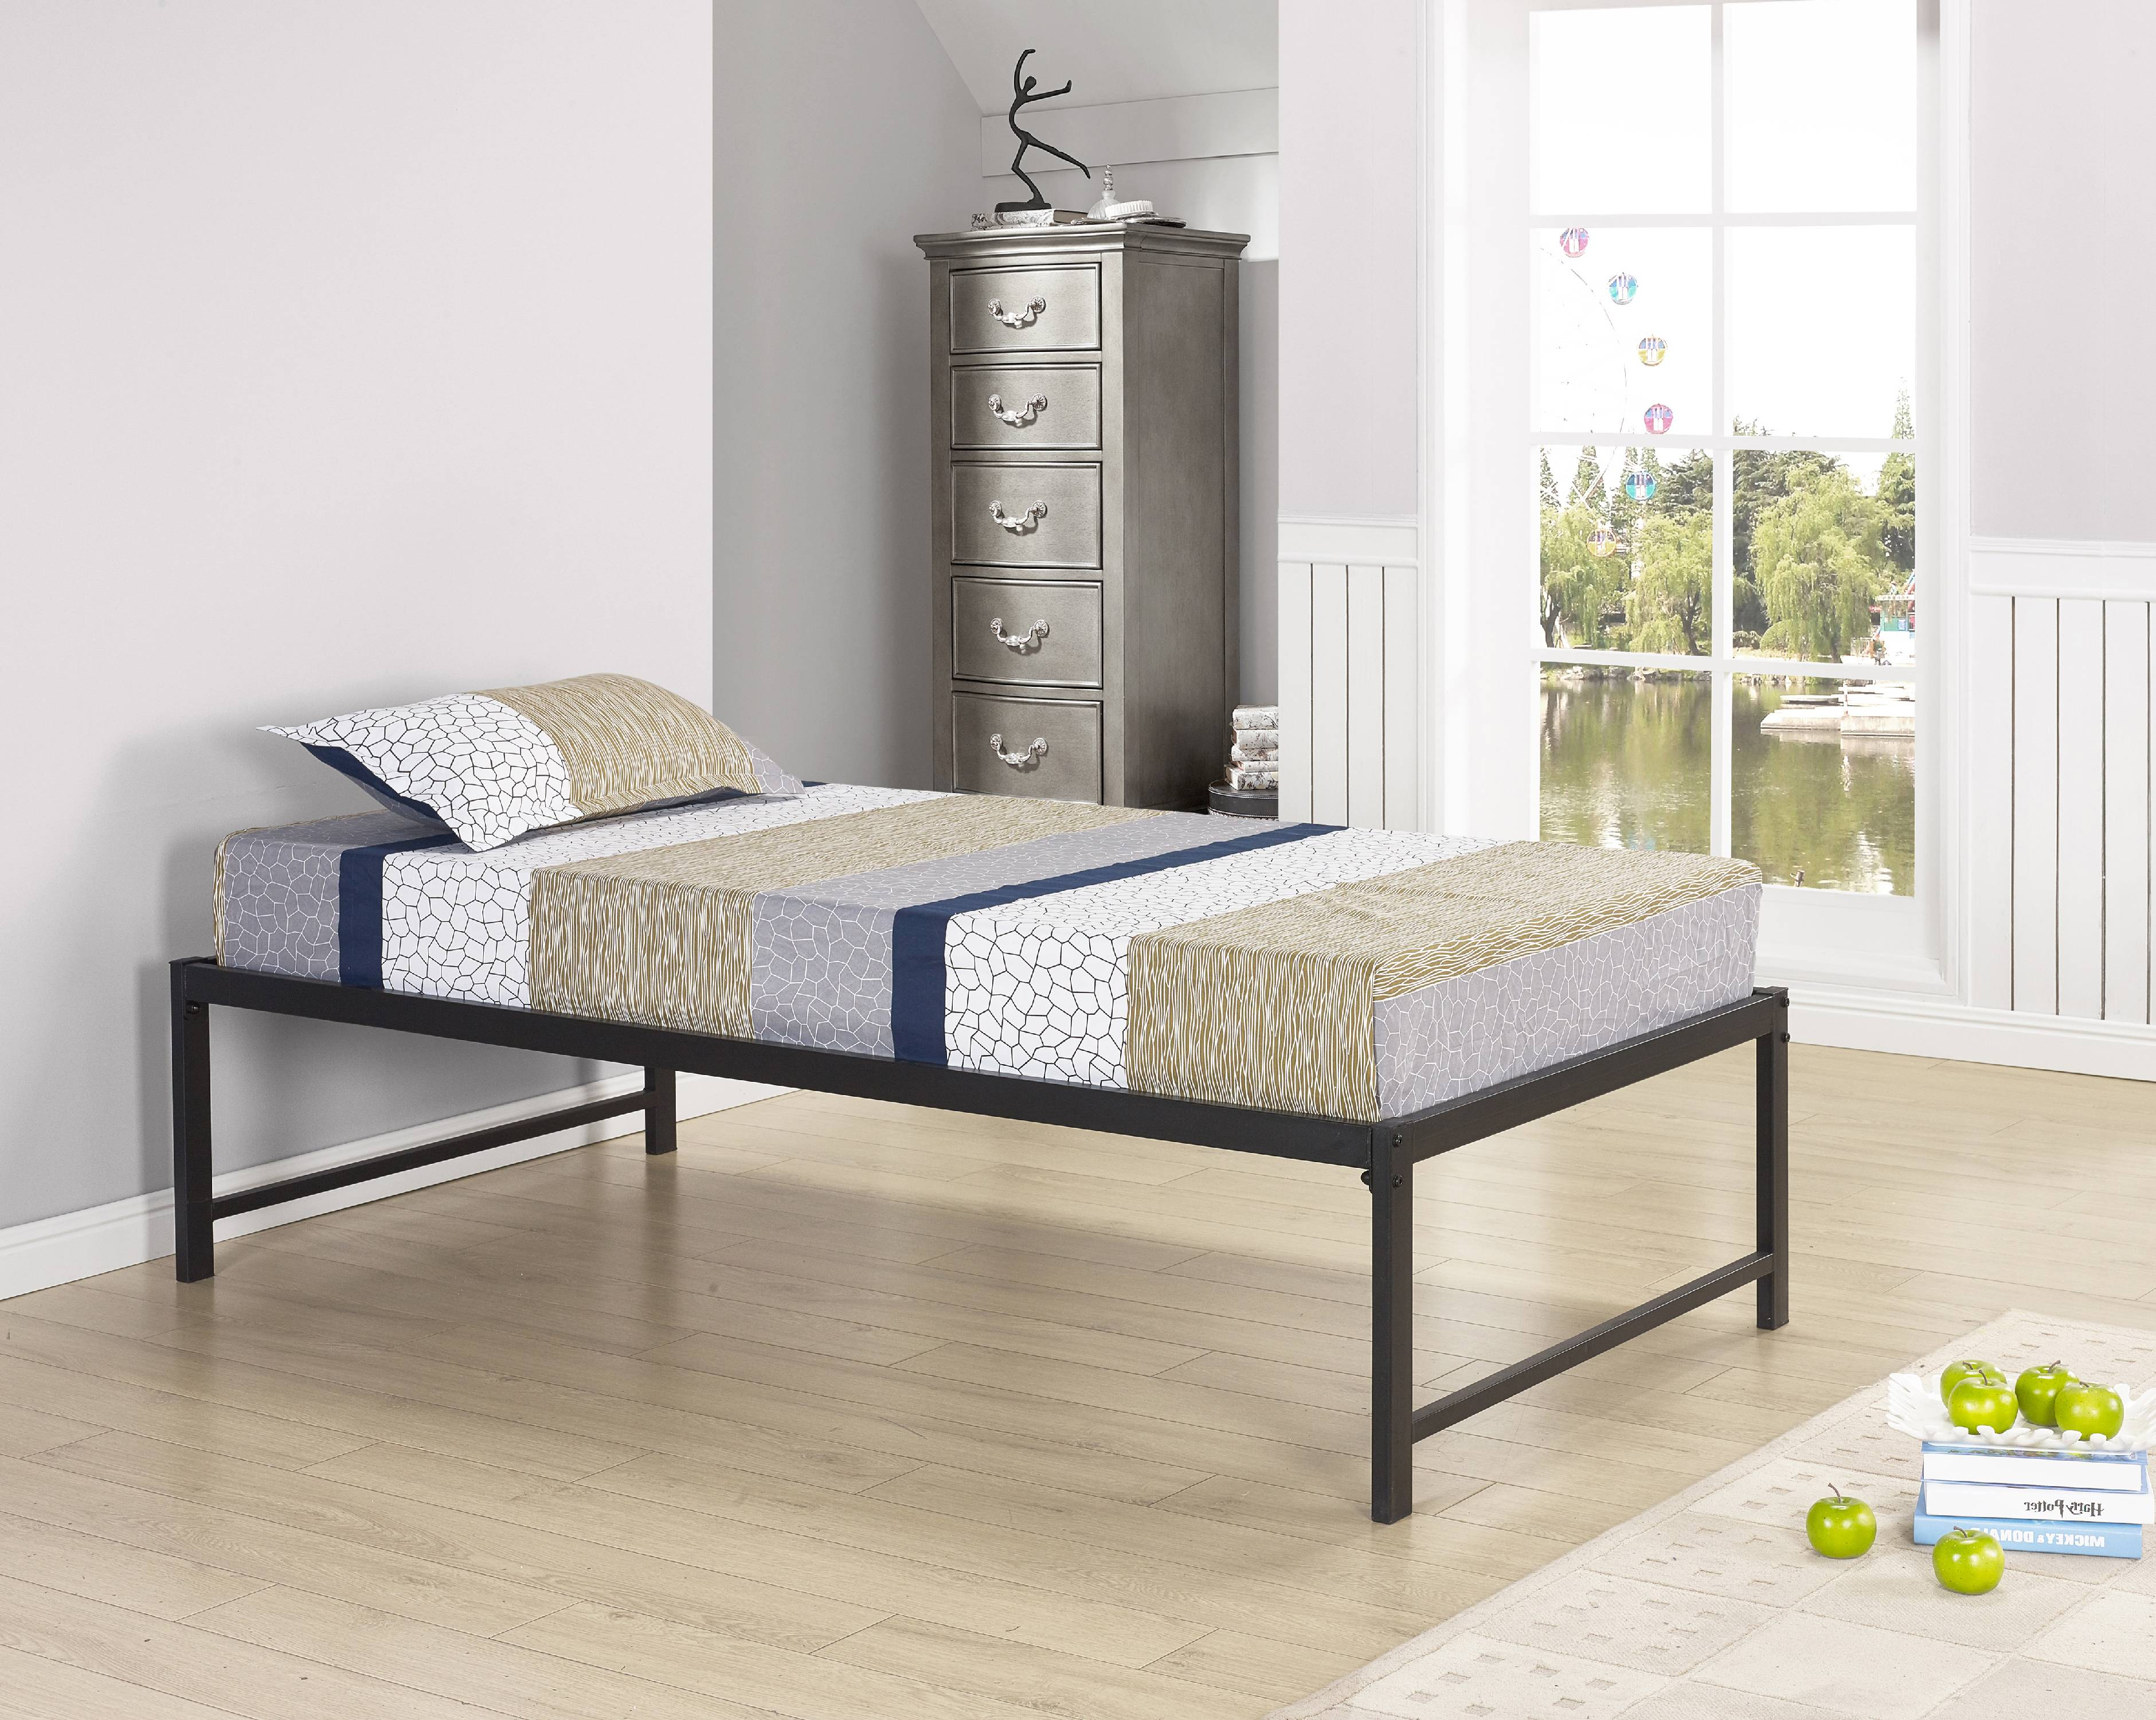 "Archer 39"" Twin Size Black Metal Day Bed Frame With Rails & Slats (Twin Day Bed) by Pilaster Designs"